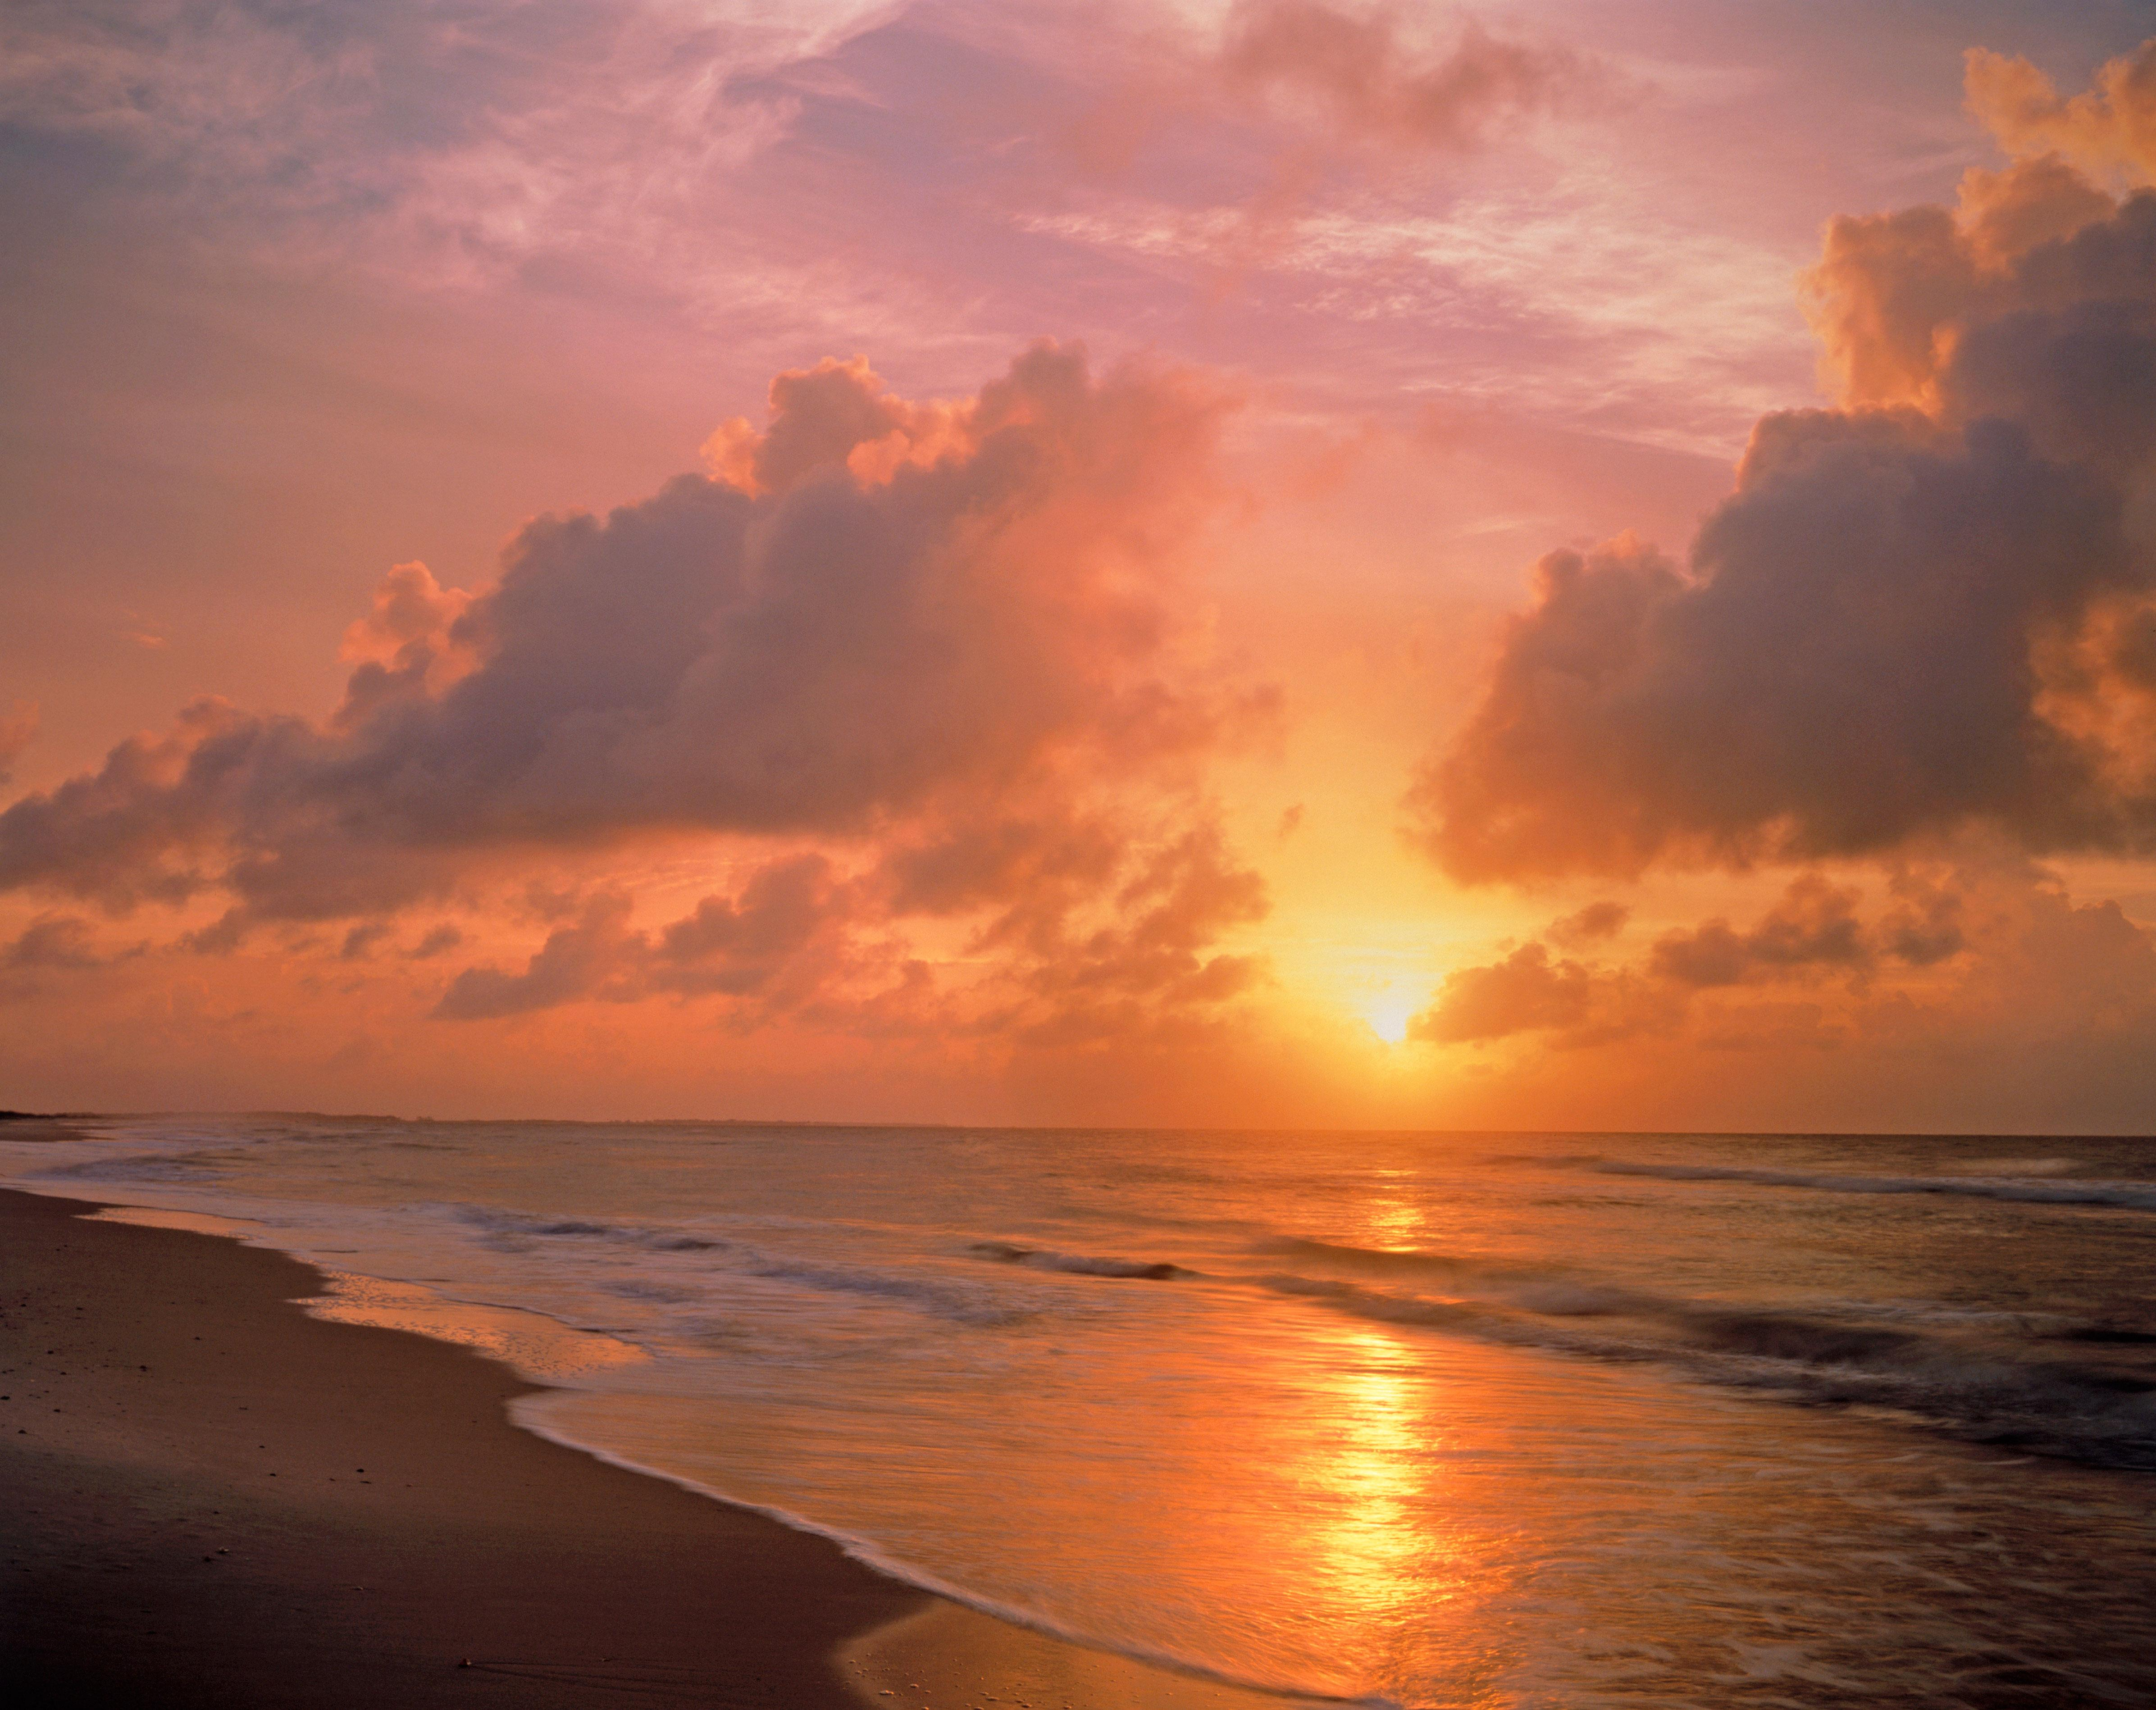 """<p>With nine miles of some of the most pristine beaches along Florida's Gulf Coast, <a href=""""https://www.floridastateparks.org/park/St-George-Island"""" rel=""""nofollow noopener"""" target=""""_blank"""" data-ylk=""""slk:St. George Island State Park"""" class=""""link rapid-noclick-resp"""">St. George Island State Park</a> is a natural beauty and a haven for lots of happy locals, including a bevvy of birds: terns, plovers, herons, black skimmers, sandpipers, osprey, and bald eagles; and a wealth of fish: flounder, redfish, sea trout, pompano, whiting, and Spanish mackerel. These native inhabitants—and the bay's perfect setting for canoeing and kayaking (you can rent boats from the ranger station)—make the park a must-visit for nature enthusiasts. The 1,962-acre park features a 2.5-mile trail that meanders through pine flatwood forest and ends at the bay. Sixty campsites with water and electricity hook-ups, as well as covered pavilions with grills, are located in the main campsite area, while tent camping is available at the end of a 2.5-mile nature trail.</p>"""